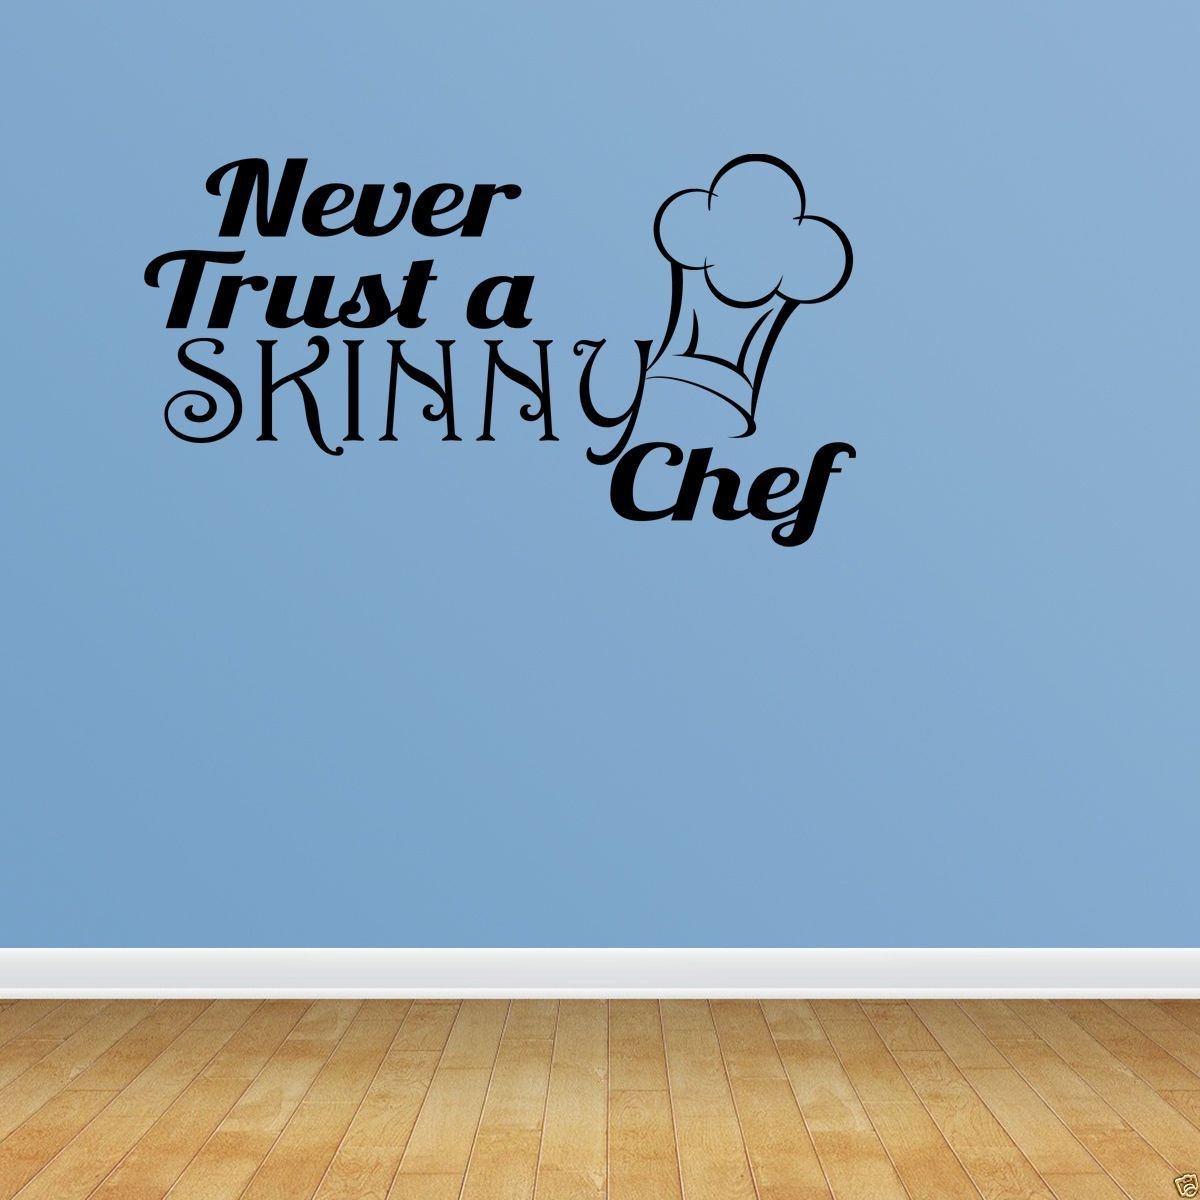 Wall Decal Quote Never Trust a Skinny Chef Kitchen Wall Sticker ...